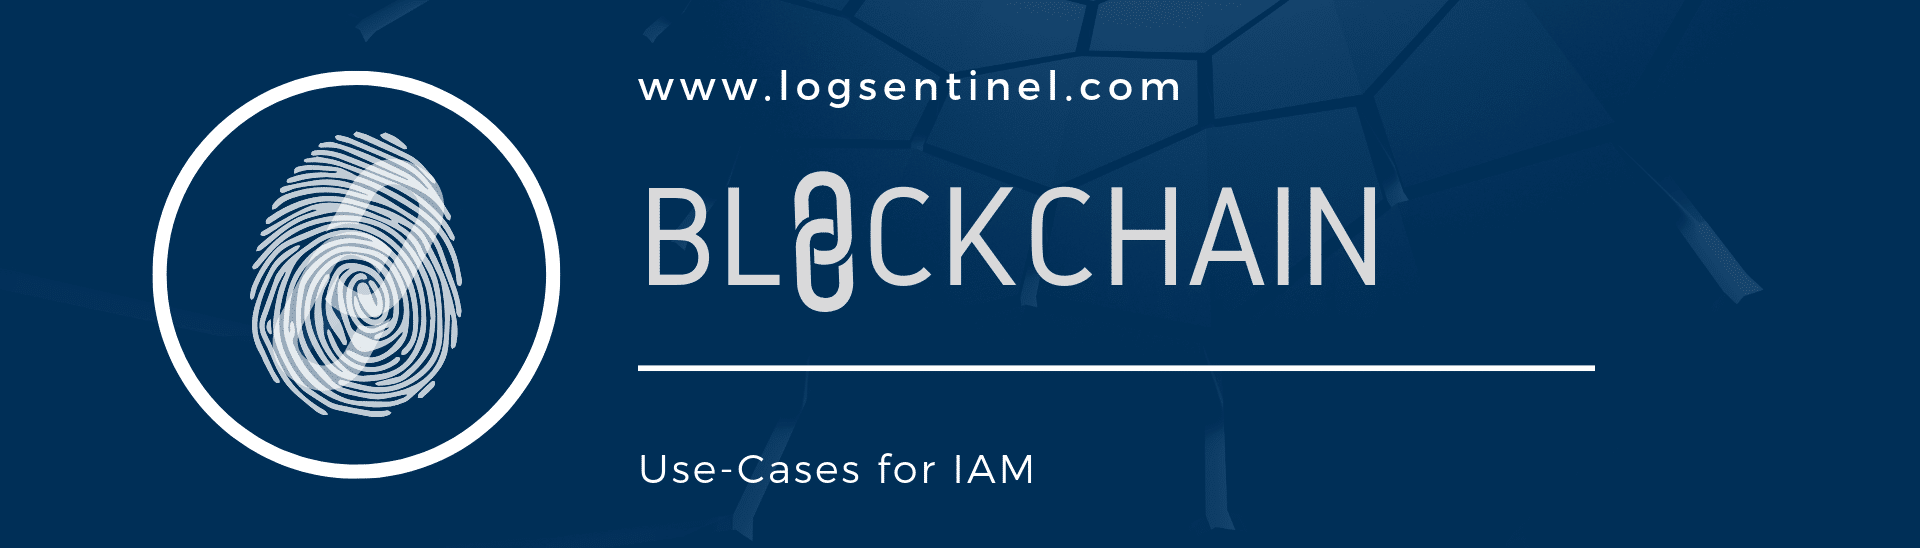 Blockchain use cases for Identity access management